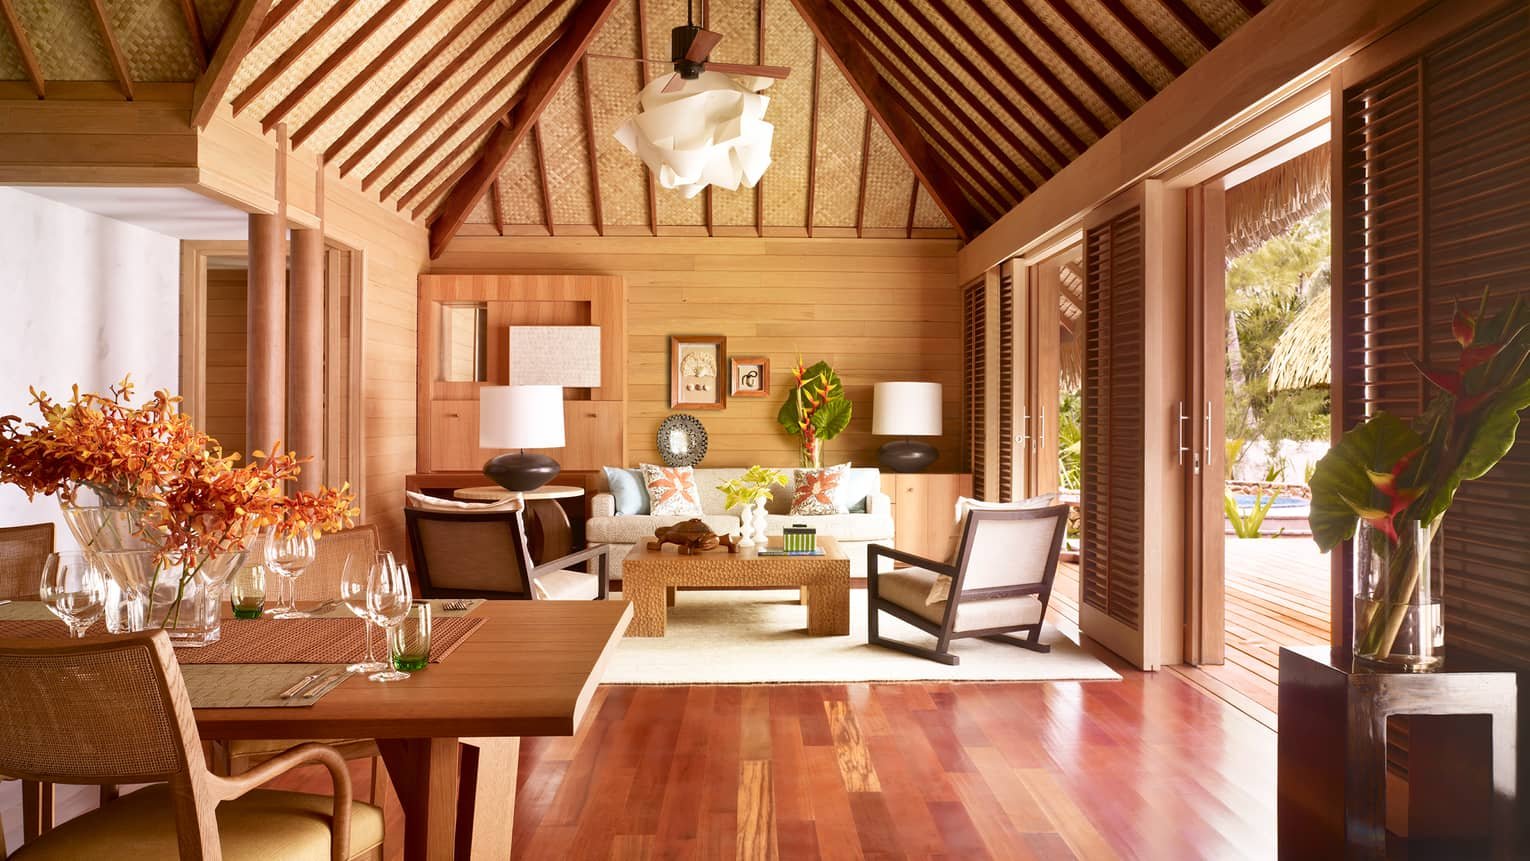 Two-bedroom beachfront villa living room with white sofa and chairs, cathedral ceilings, hardwood floors